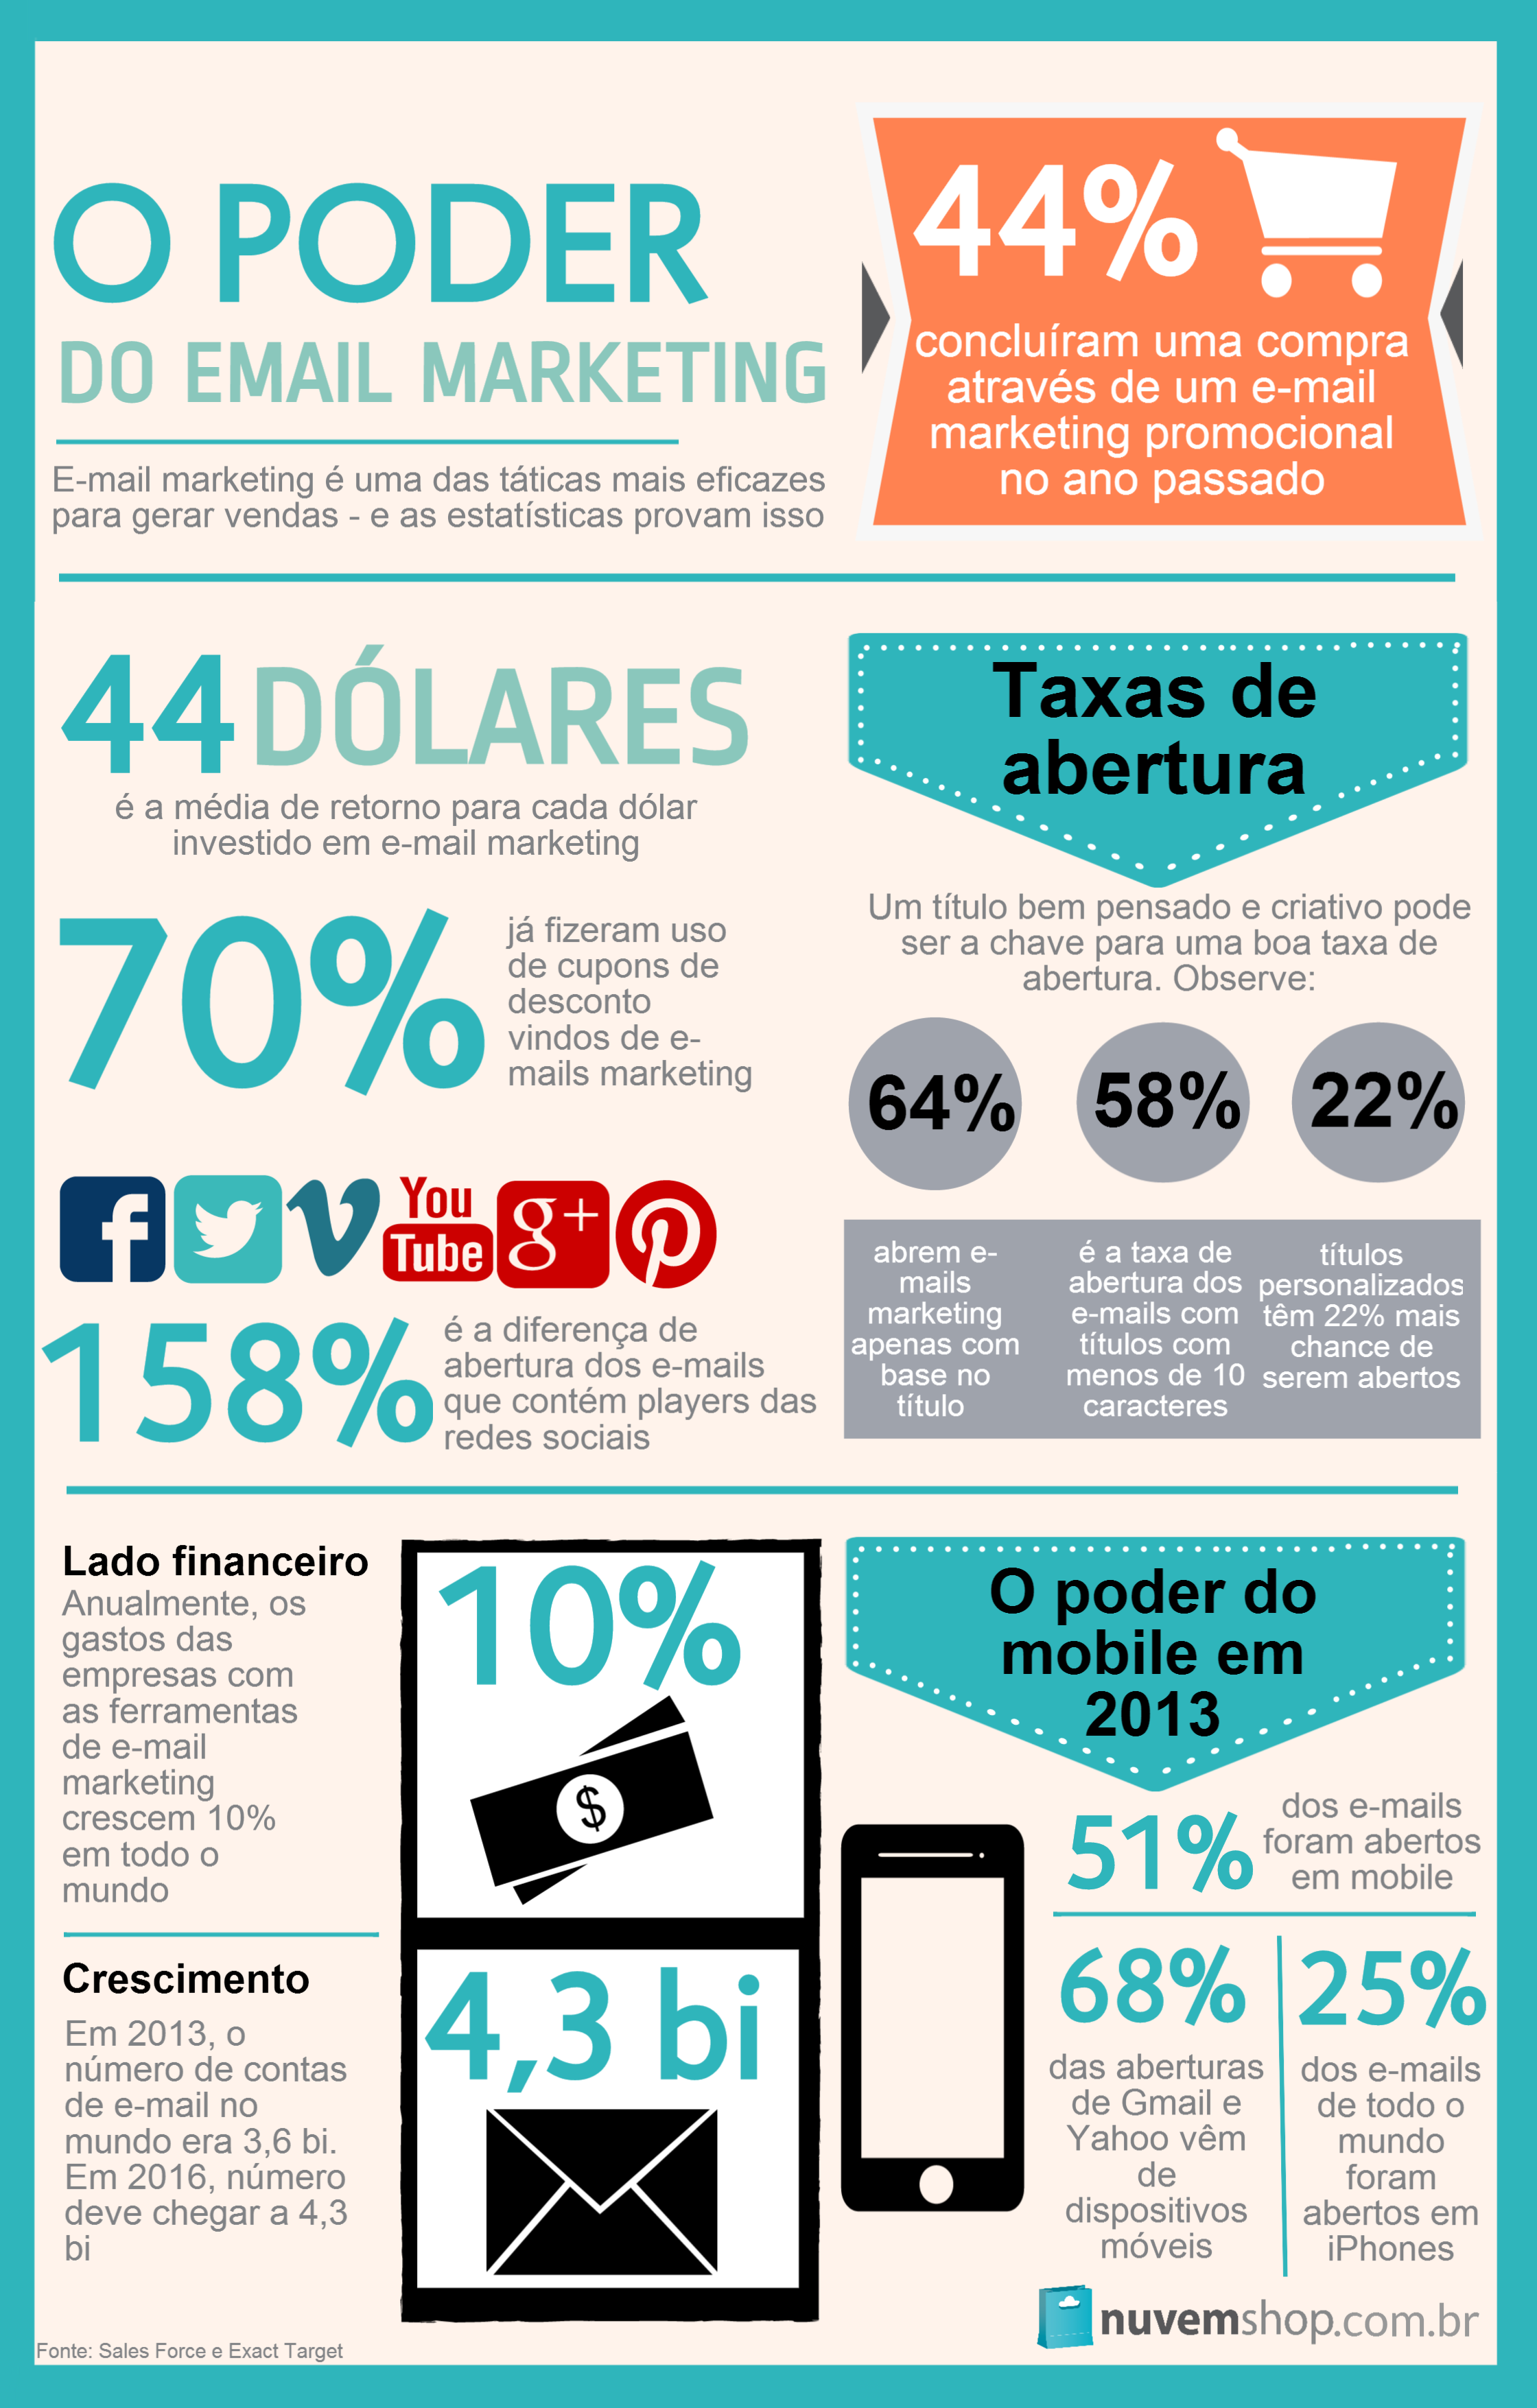 O poder do e-mail marketing - dados de 2013